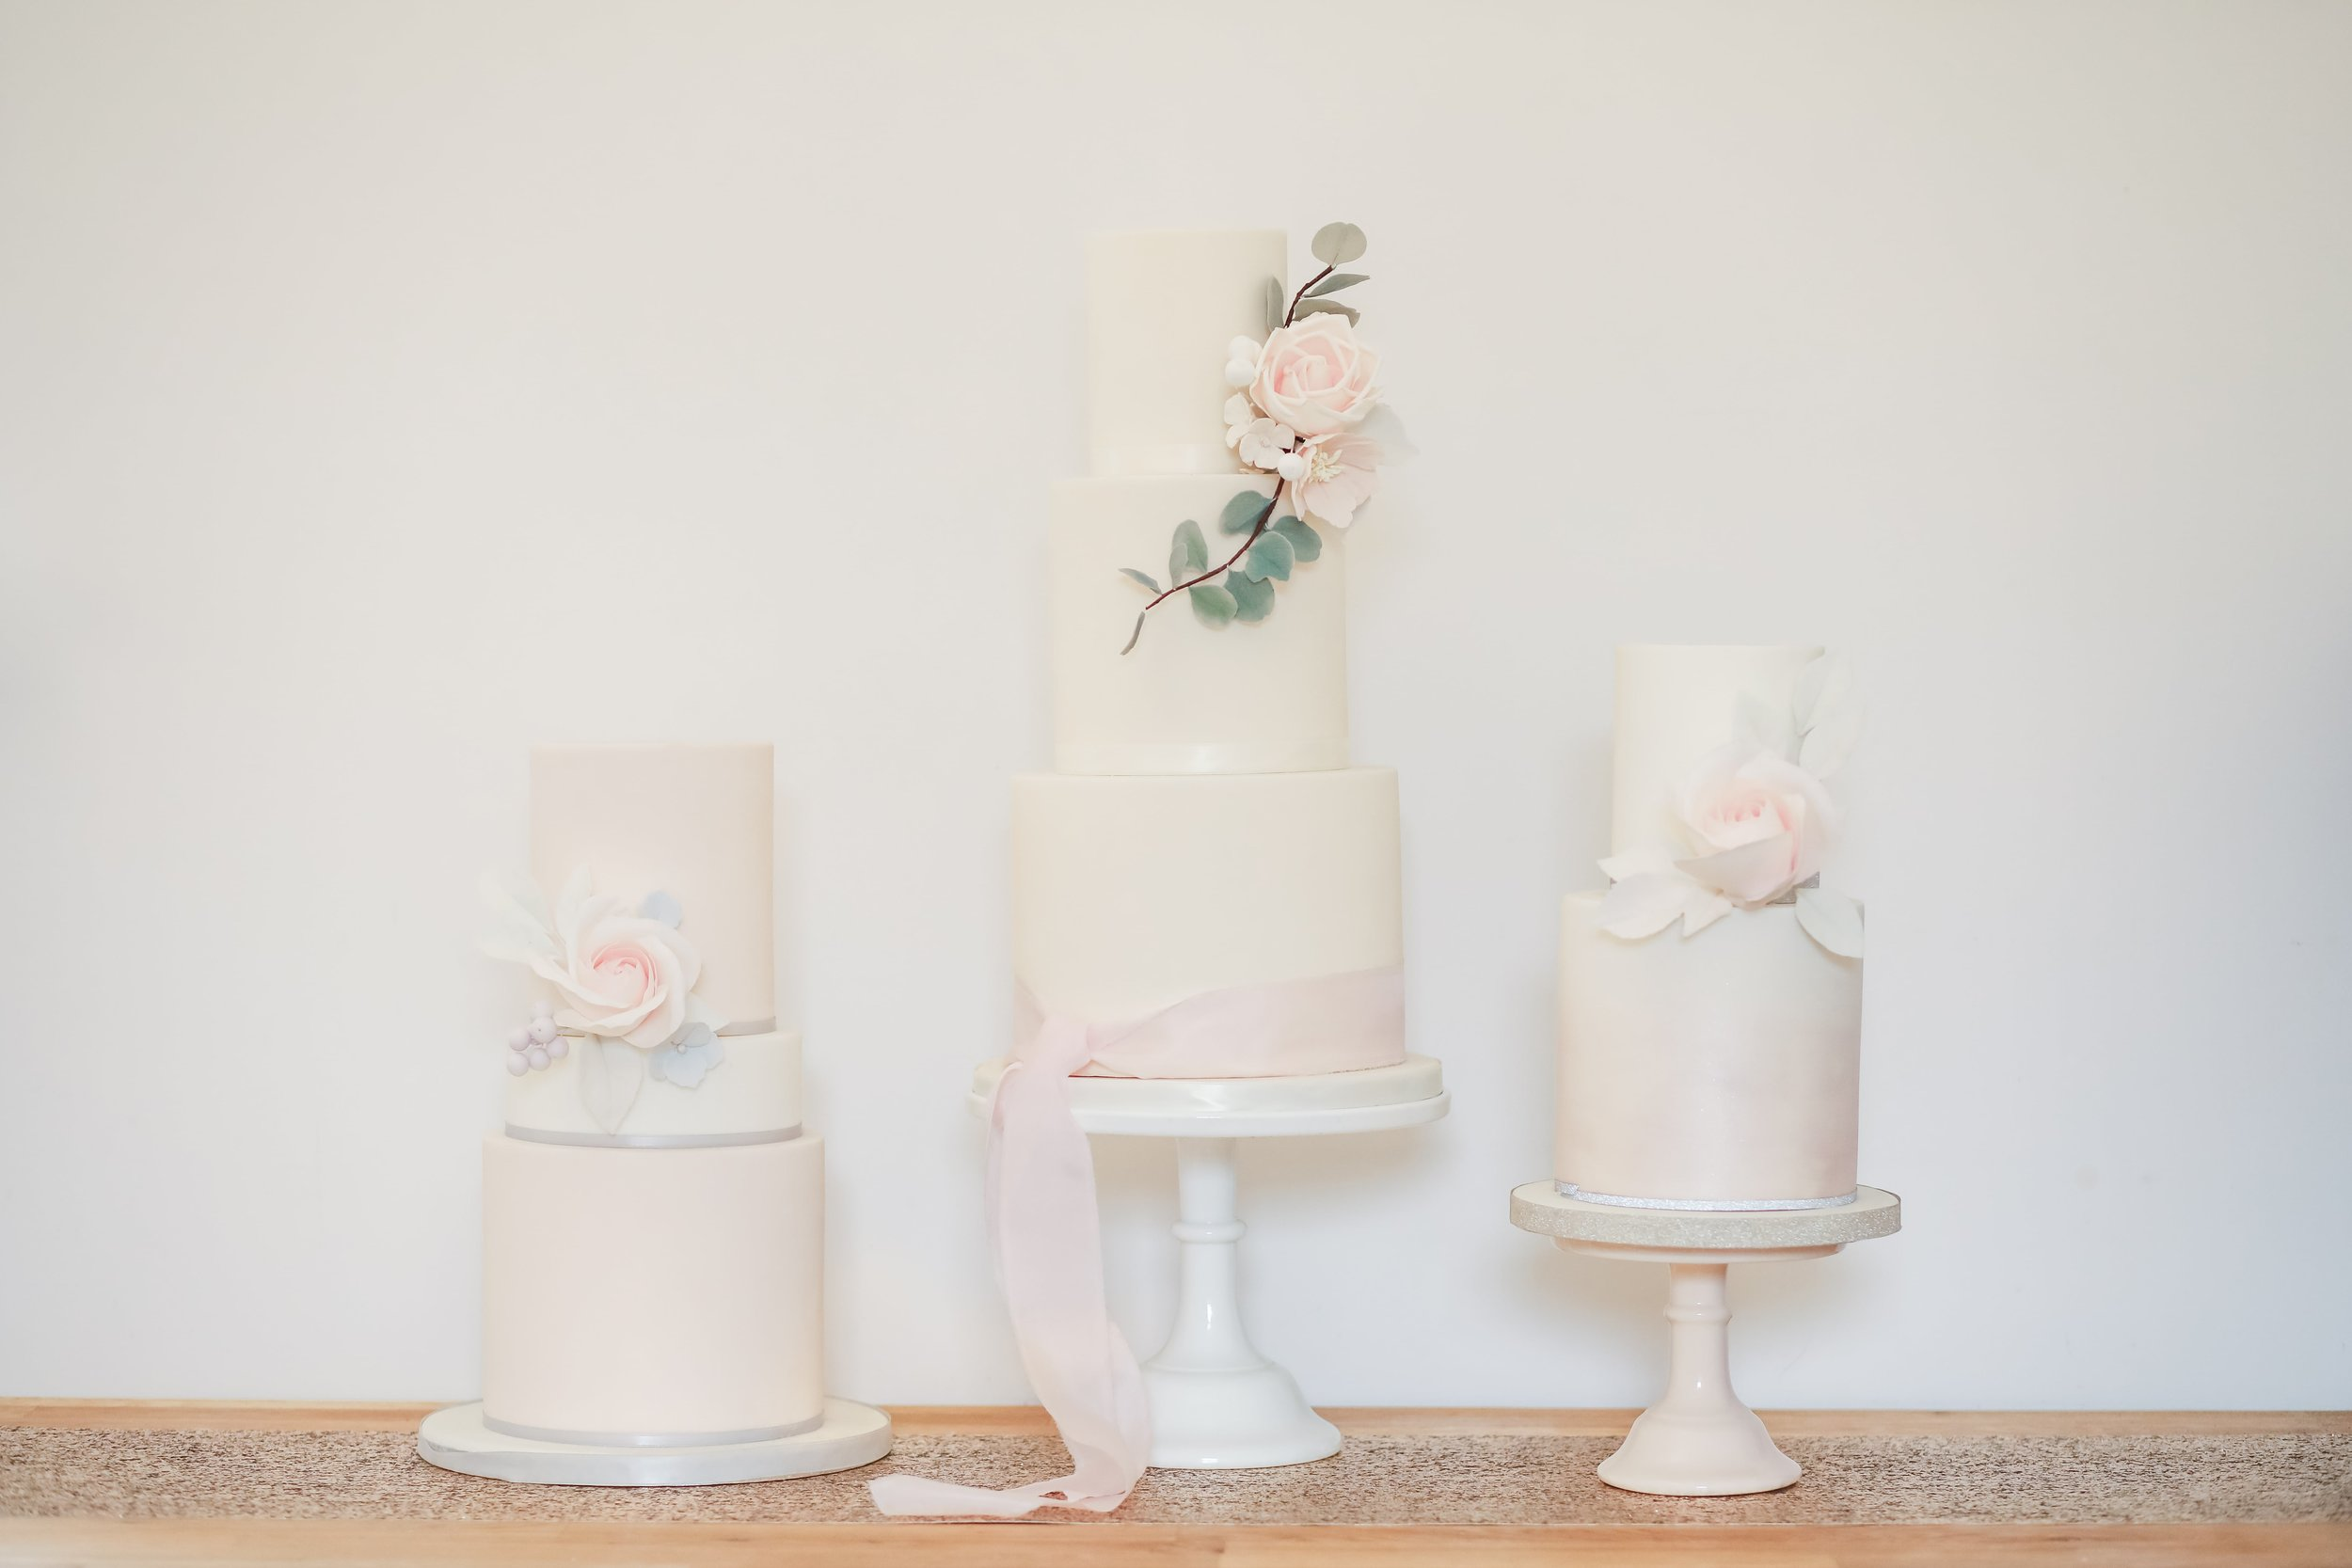 Designer wedding cakes, dessert table design by Hertfordshire wedding cake company Meadowsweet Cakes